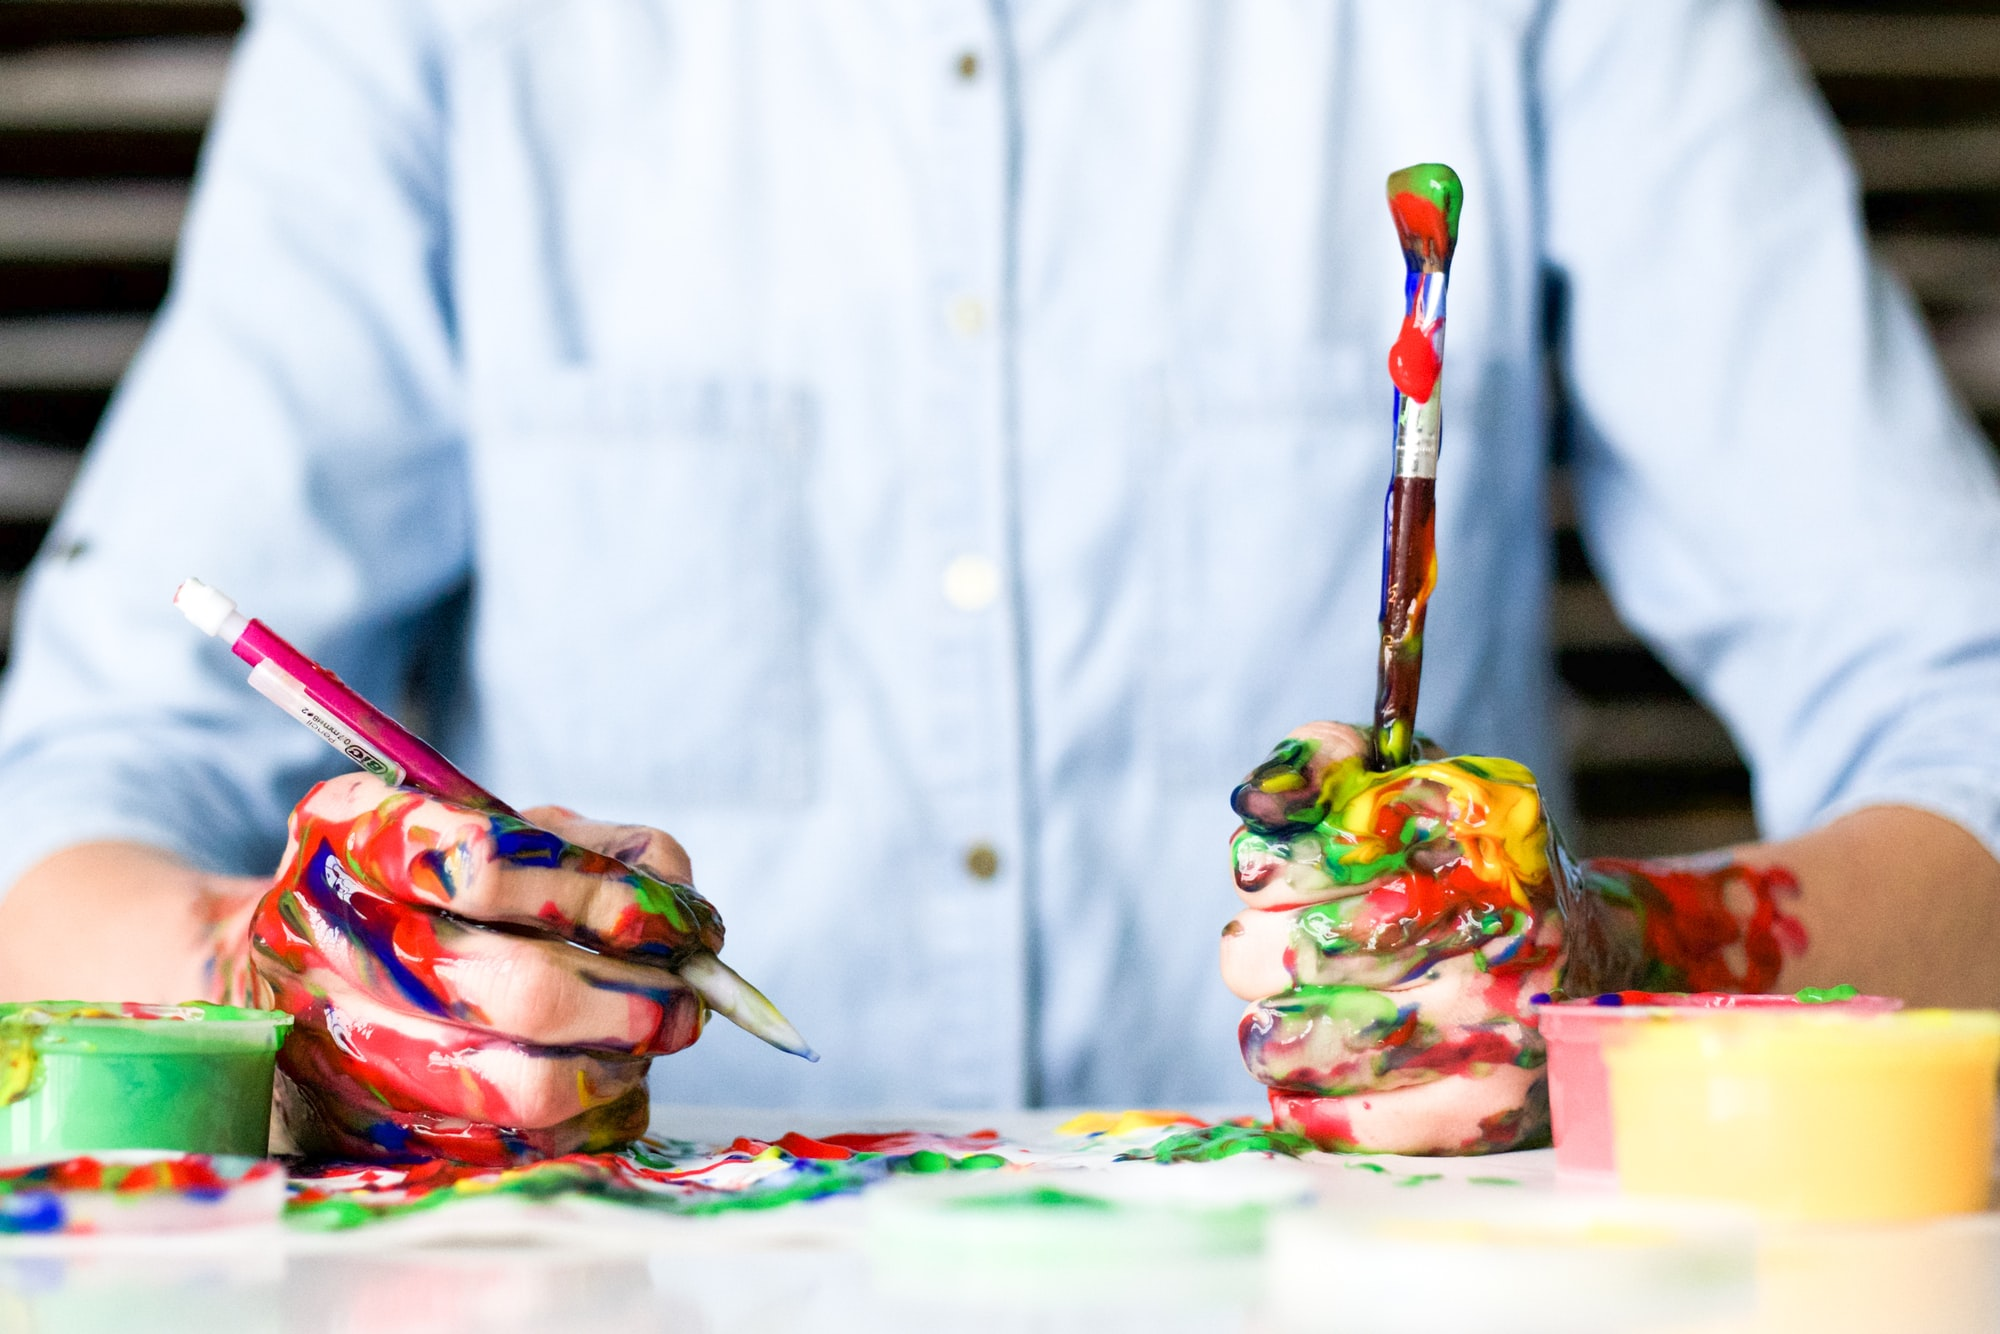 Creativity is not an Add-On, but a Necessity in the Workplace